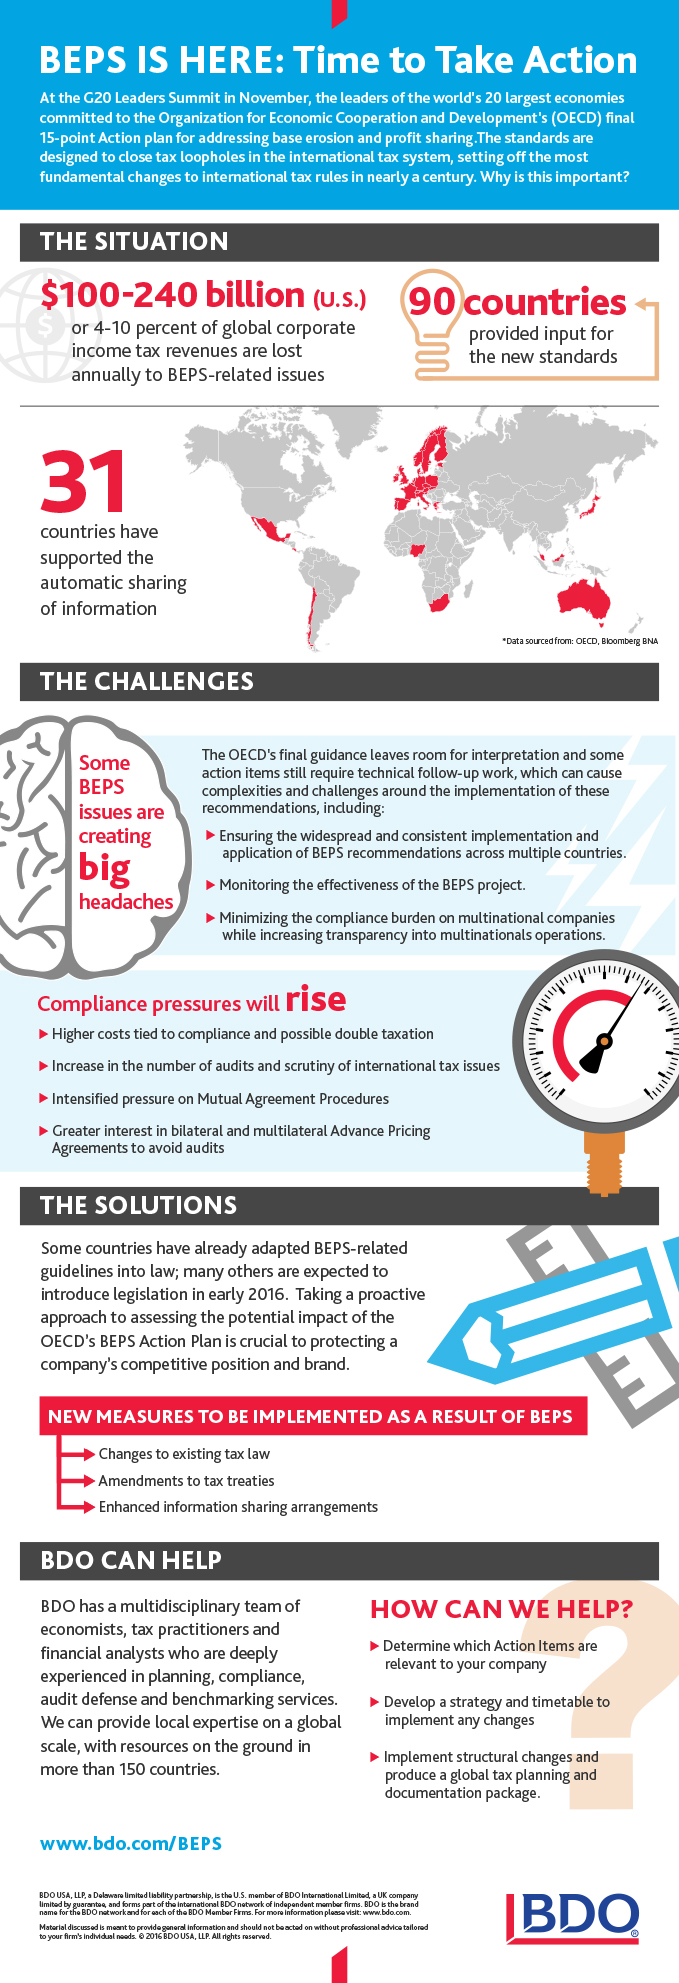 BEPS-is-Here_infographic_679w.jpg